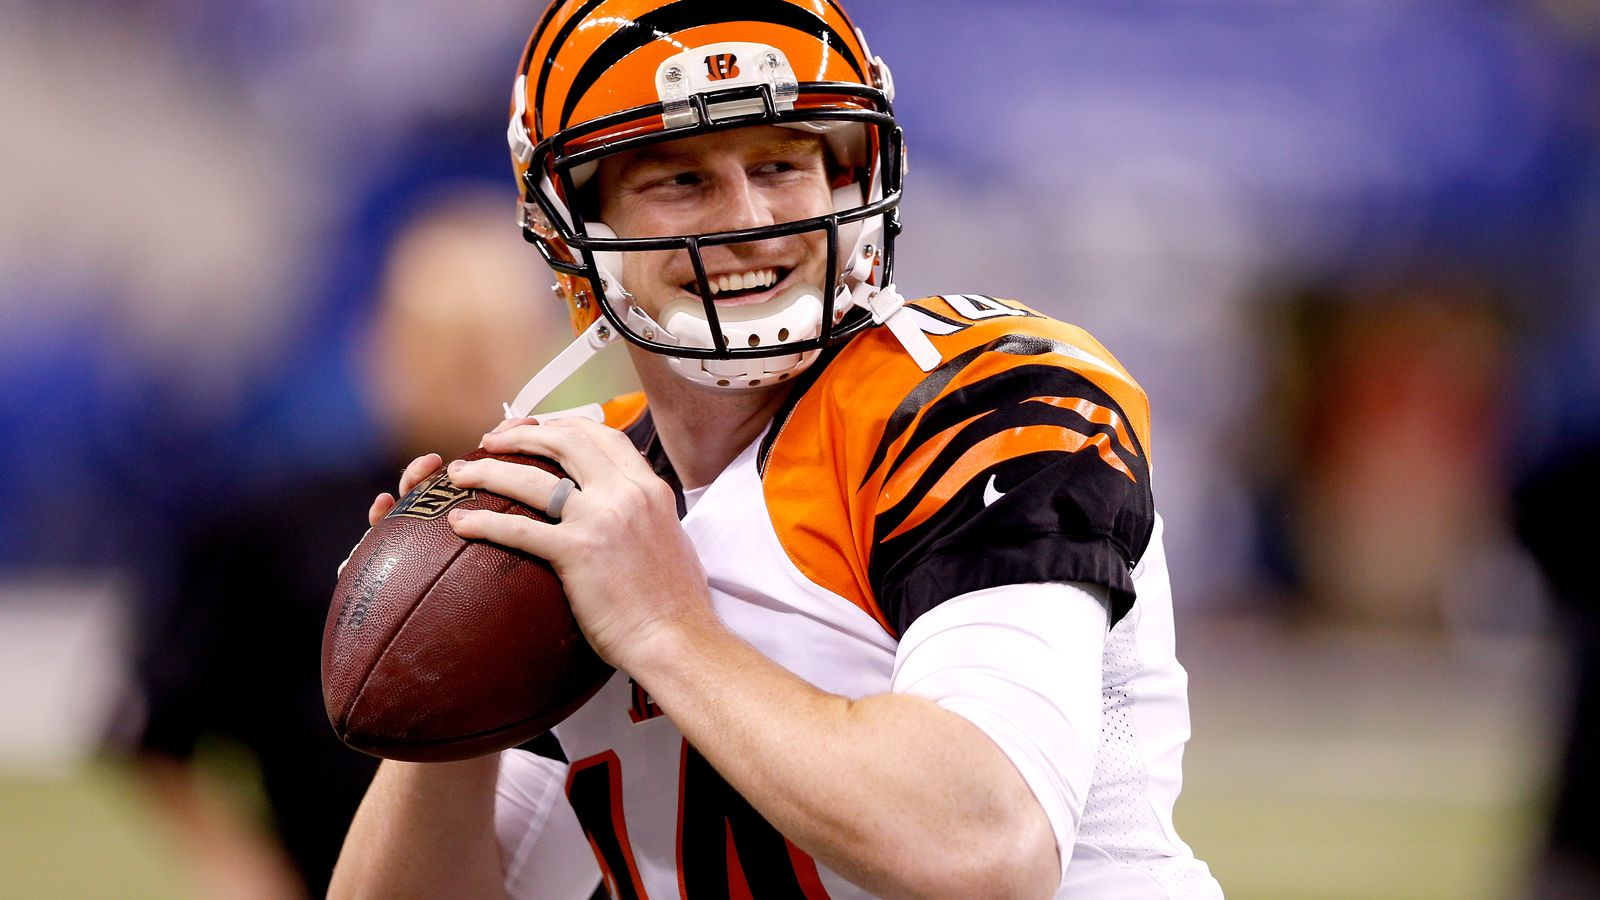 Cincinnati Bengals Quarterback Andy Dalton Named To The